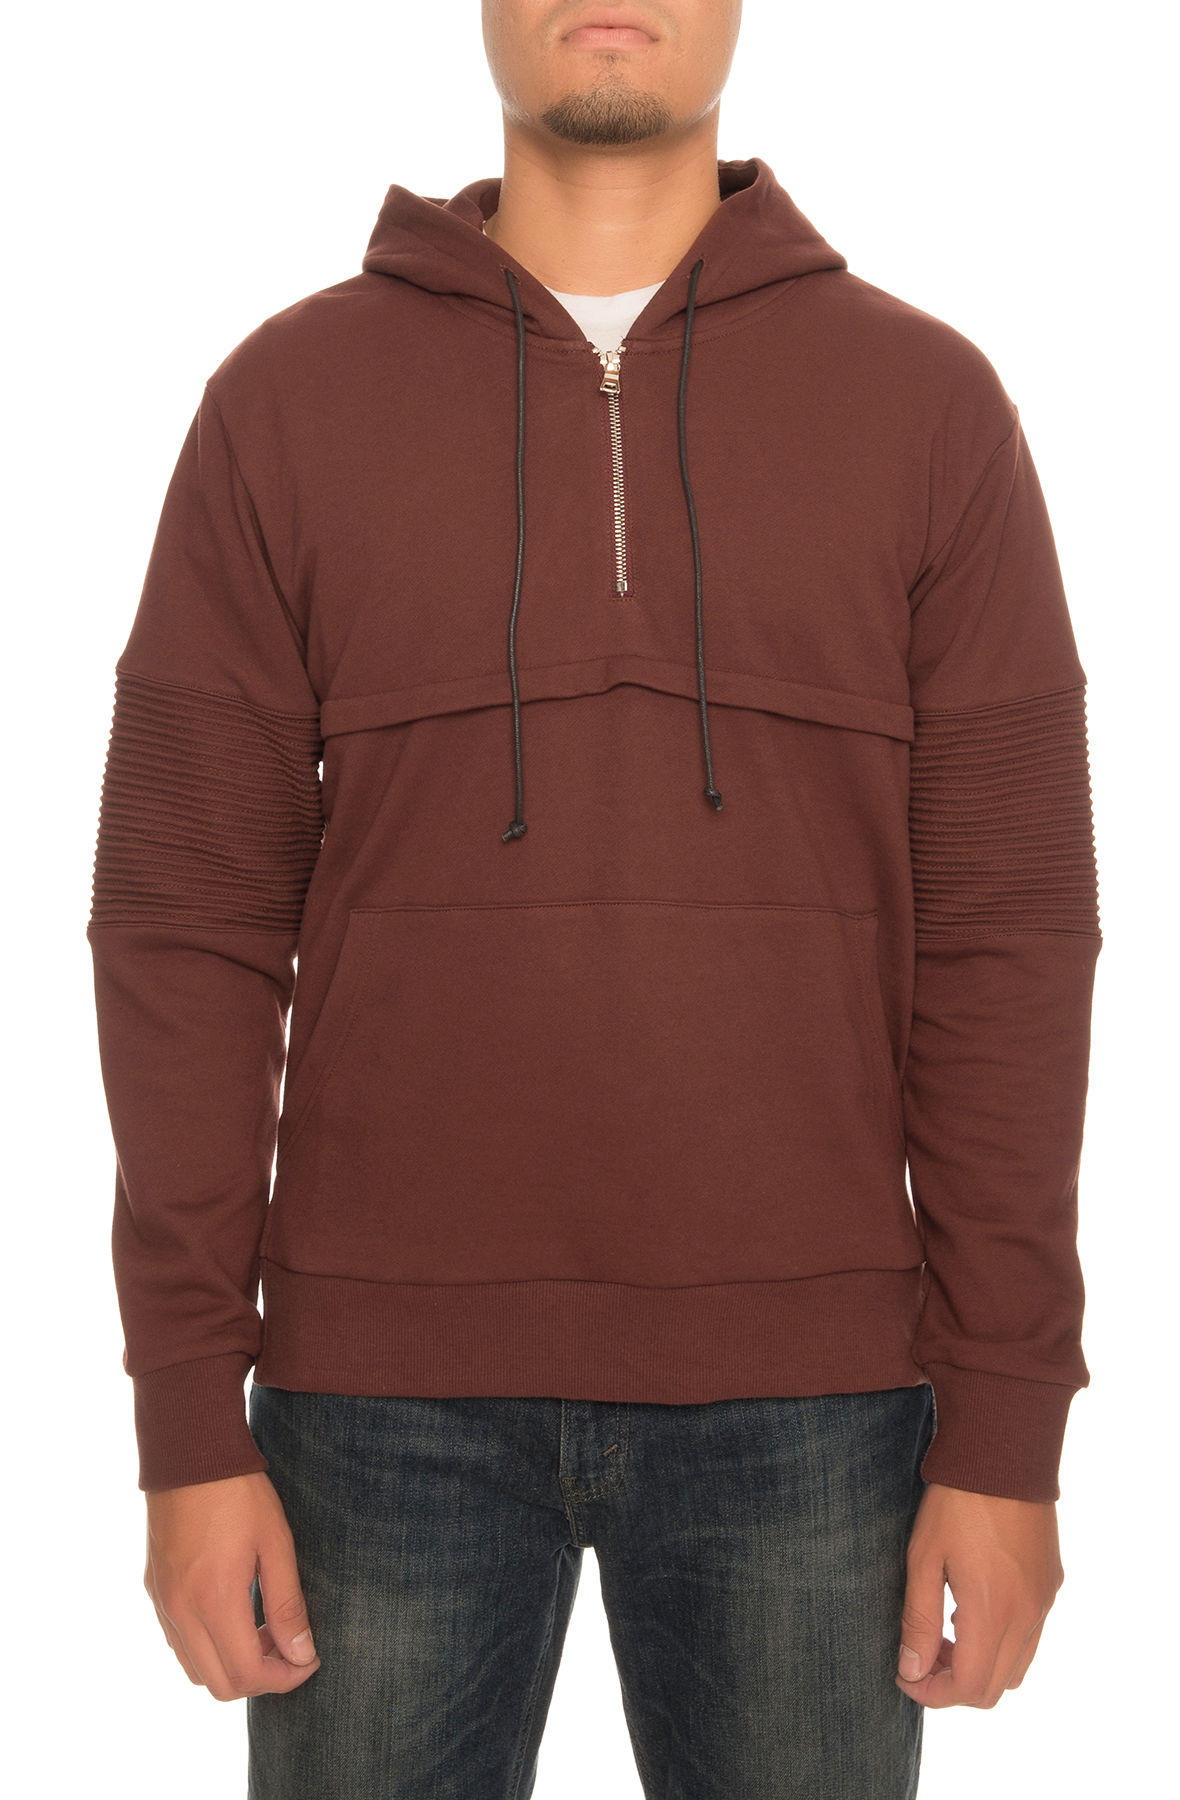 Image of The Champ Hoodie in Burgundy